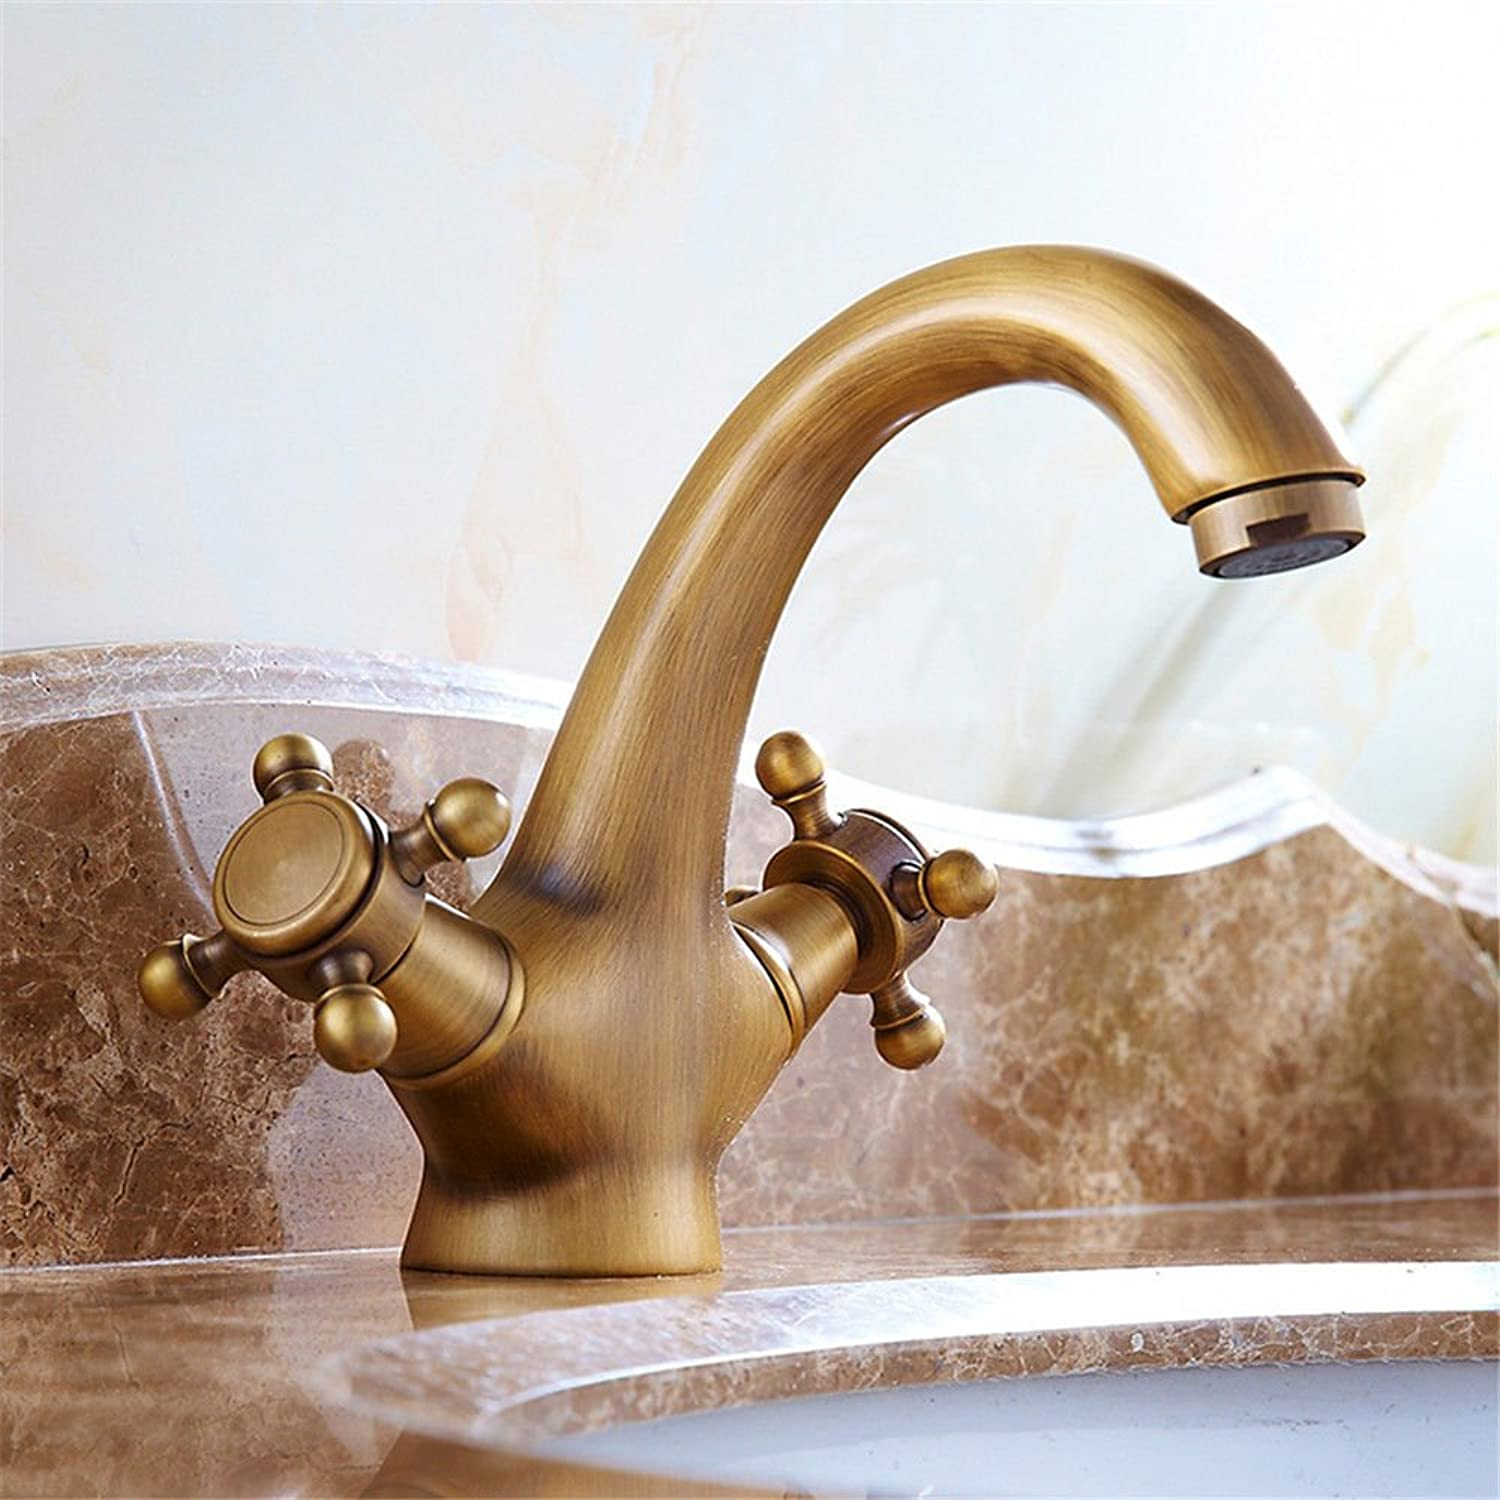 Fbict European Antique gold-Plated Basin Faucet Single Hole Double hot and Cold Copper Main Body Retro Faucet for Kitchen Bathroom Faucet Bid Tap